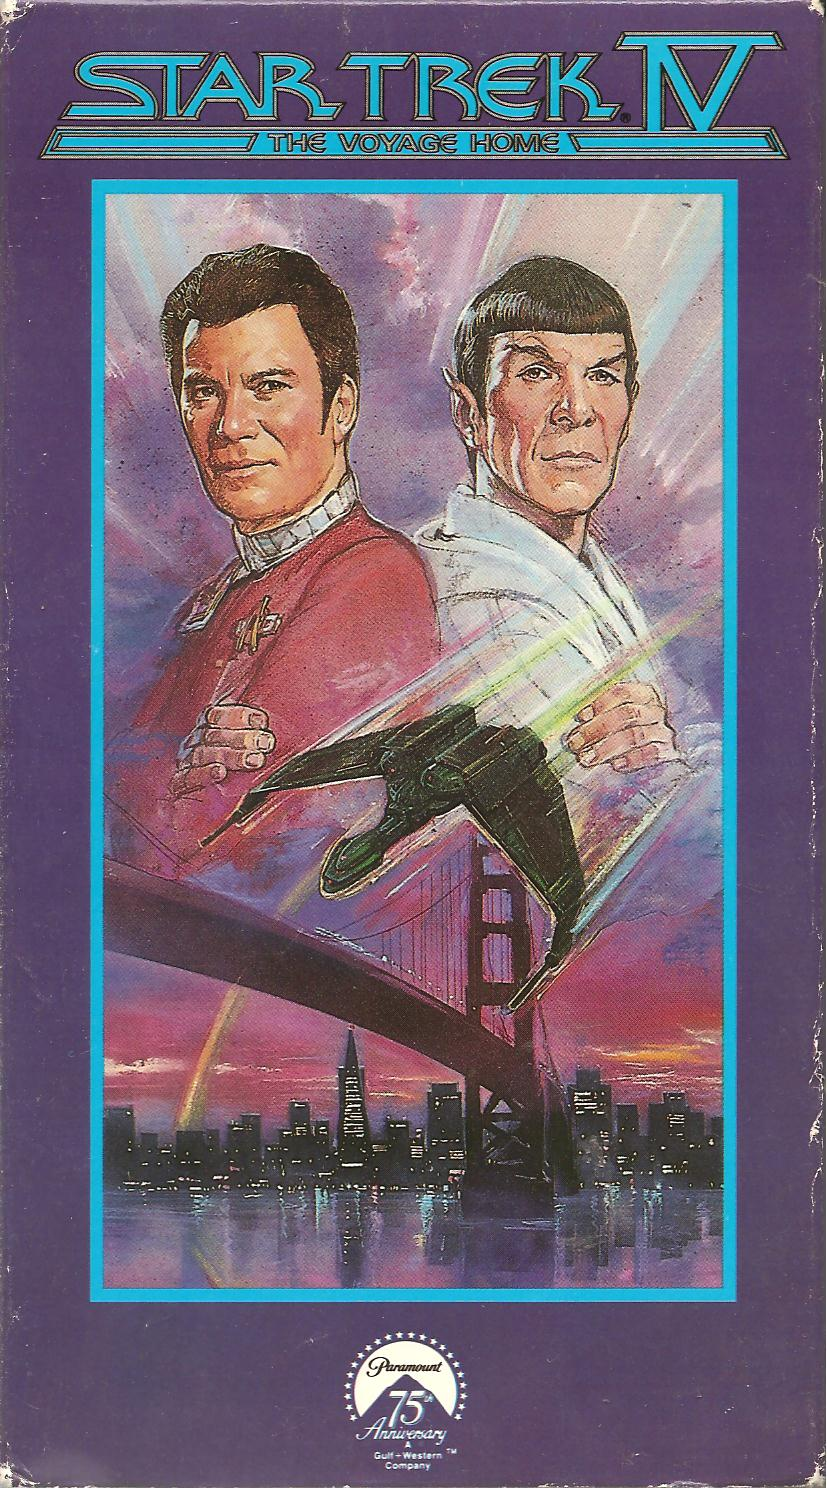 Schuster at the Movies: Star Trek IV: The Voyage Home (1986)